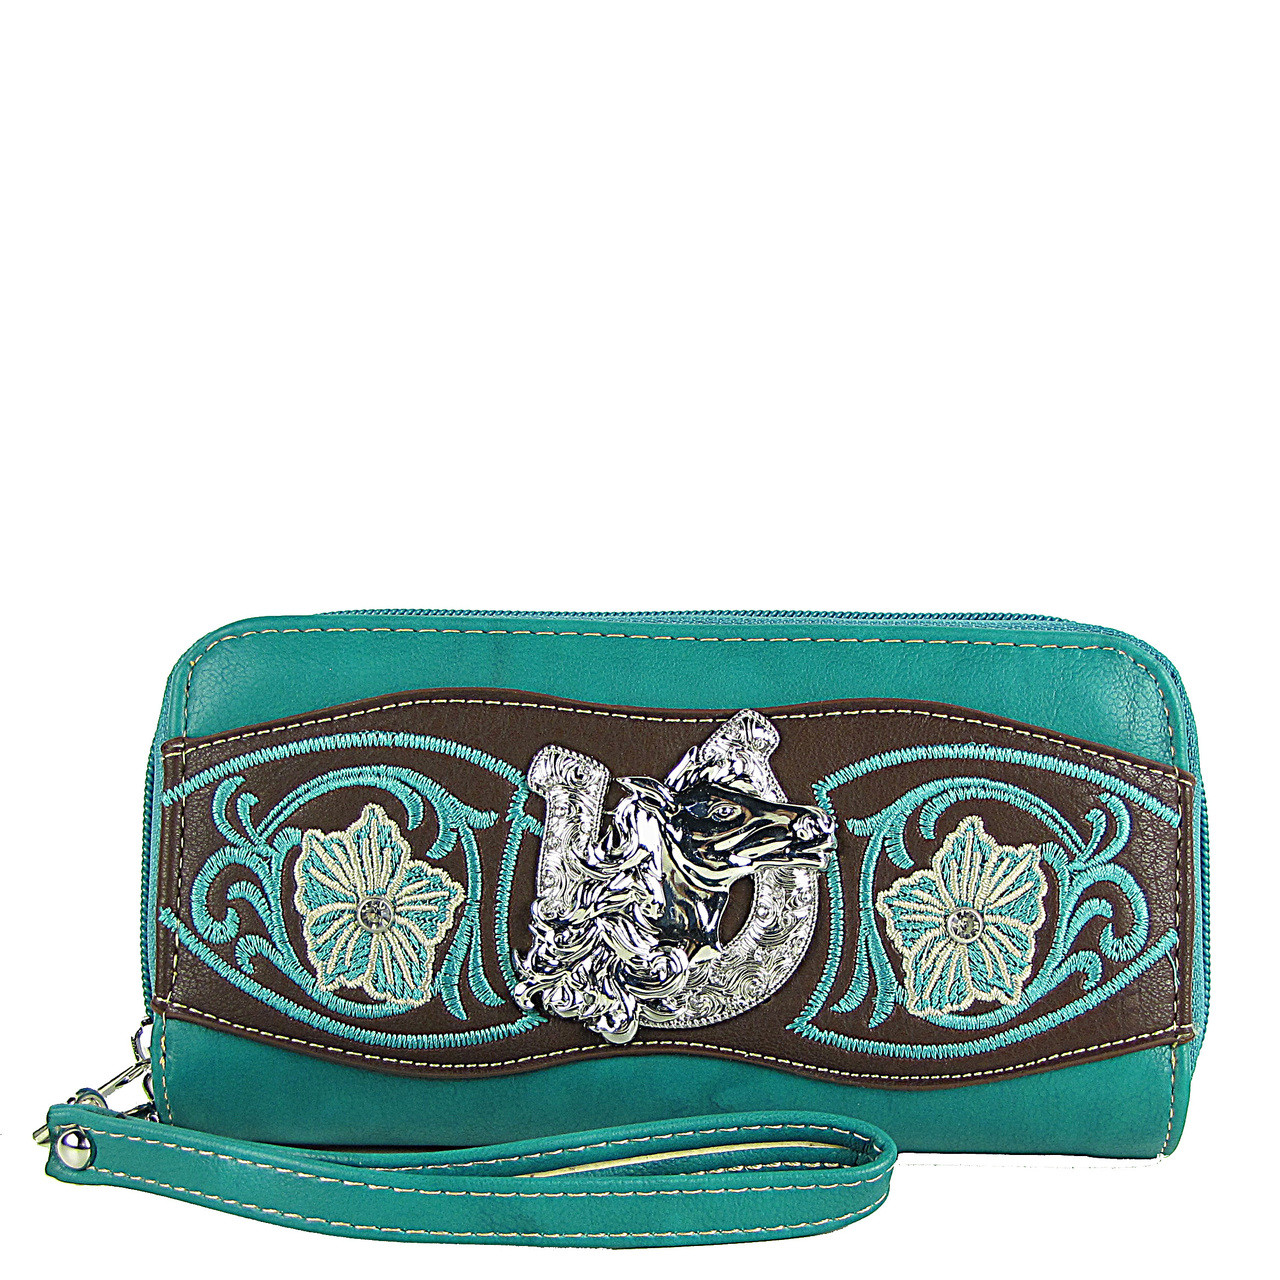 TURQUOISE HORSESHOE WITH FLOWER LOOK ***(DOUBLE ZIPPER)*** WALLET CB3-1205TRQ